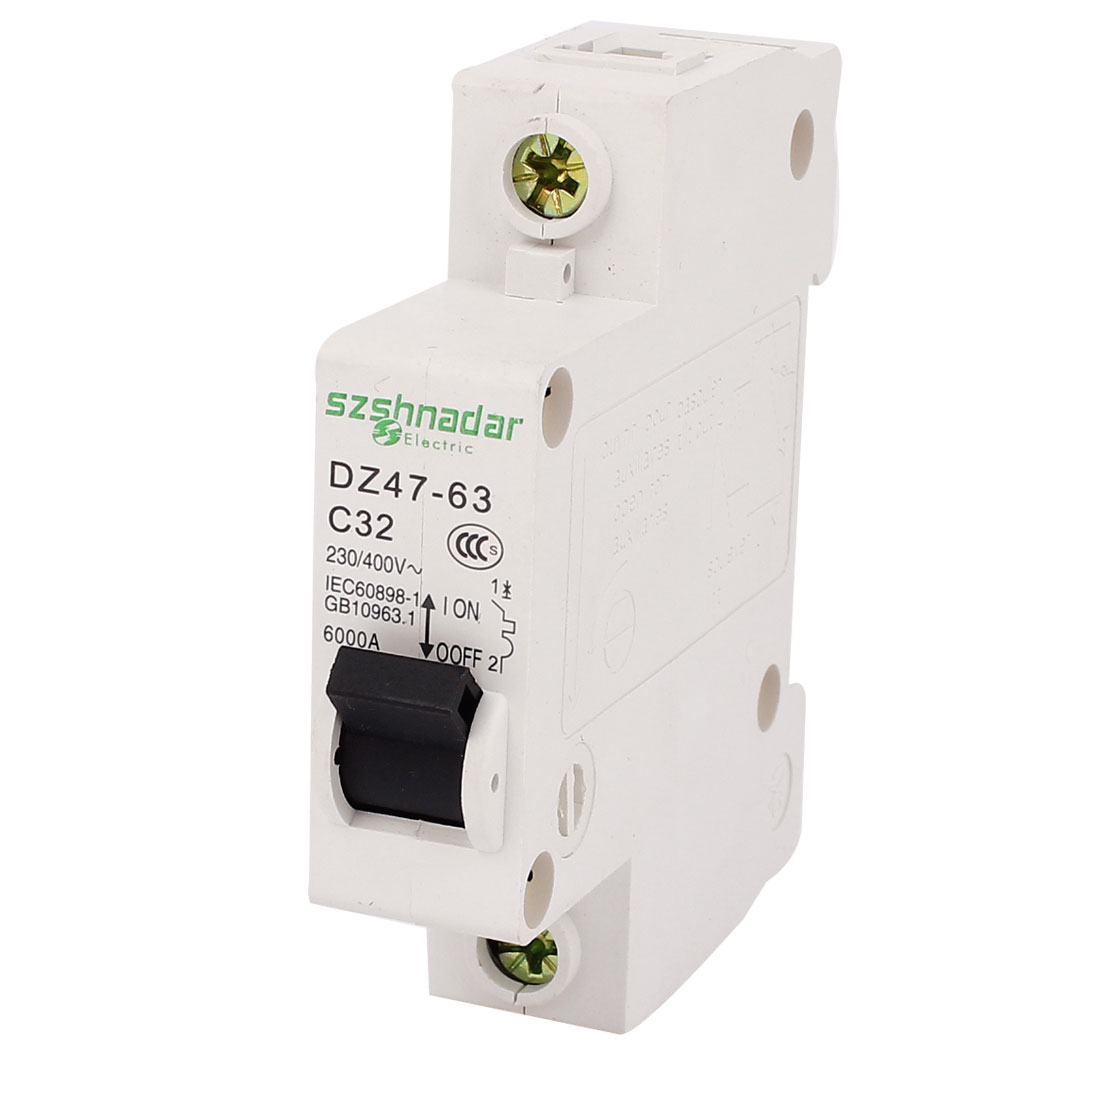 Unique Bargains AC 230/400V 32A DZ47-63 C32 1 Pole On/Off Switch Miniature Circuit Breaker White